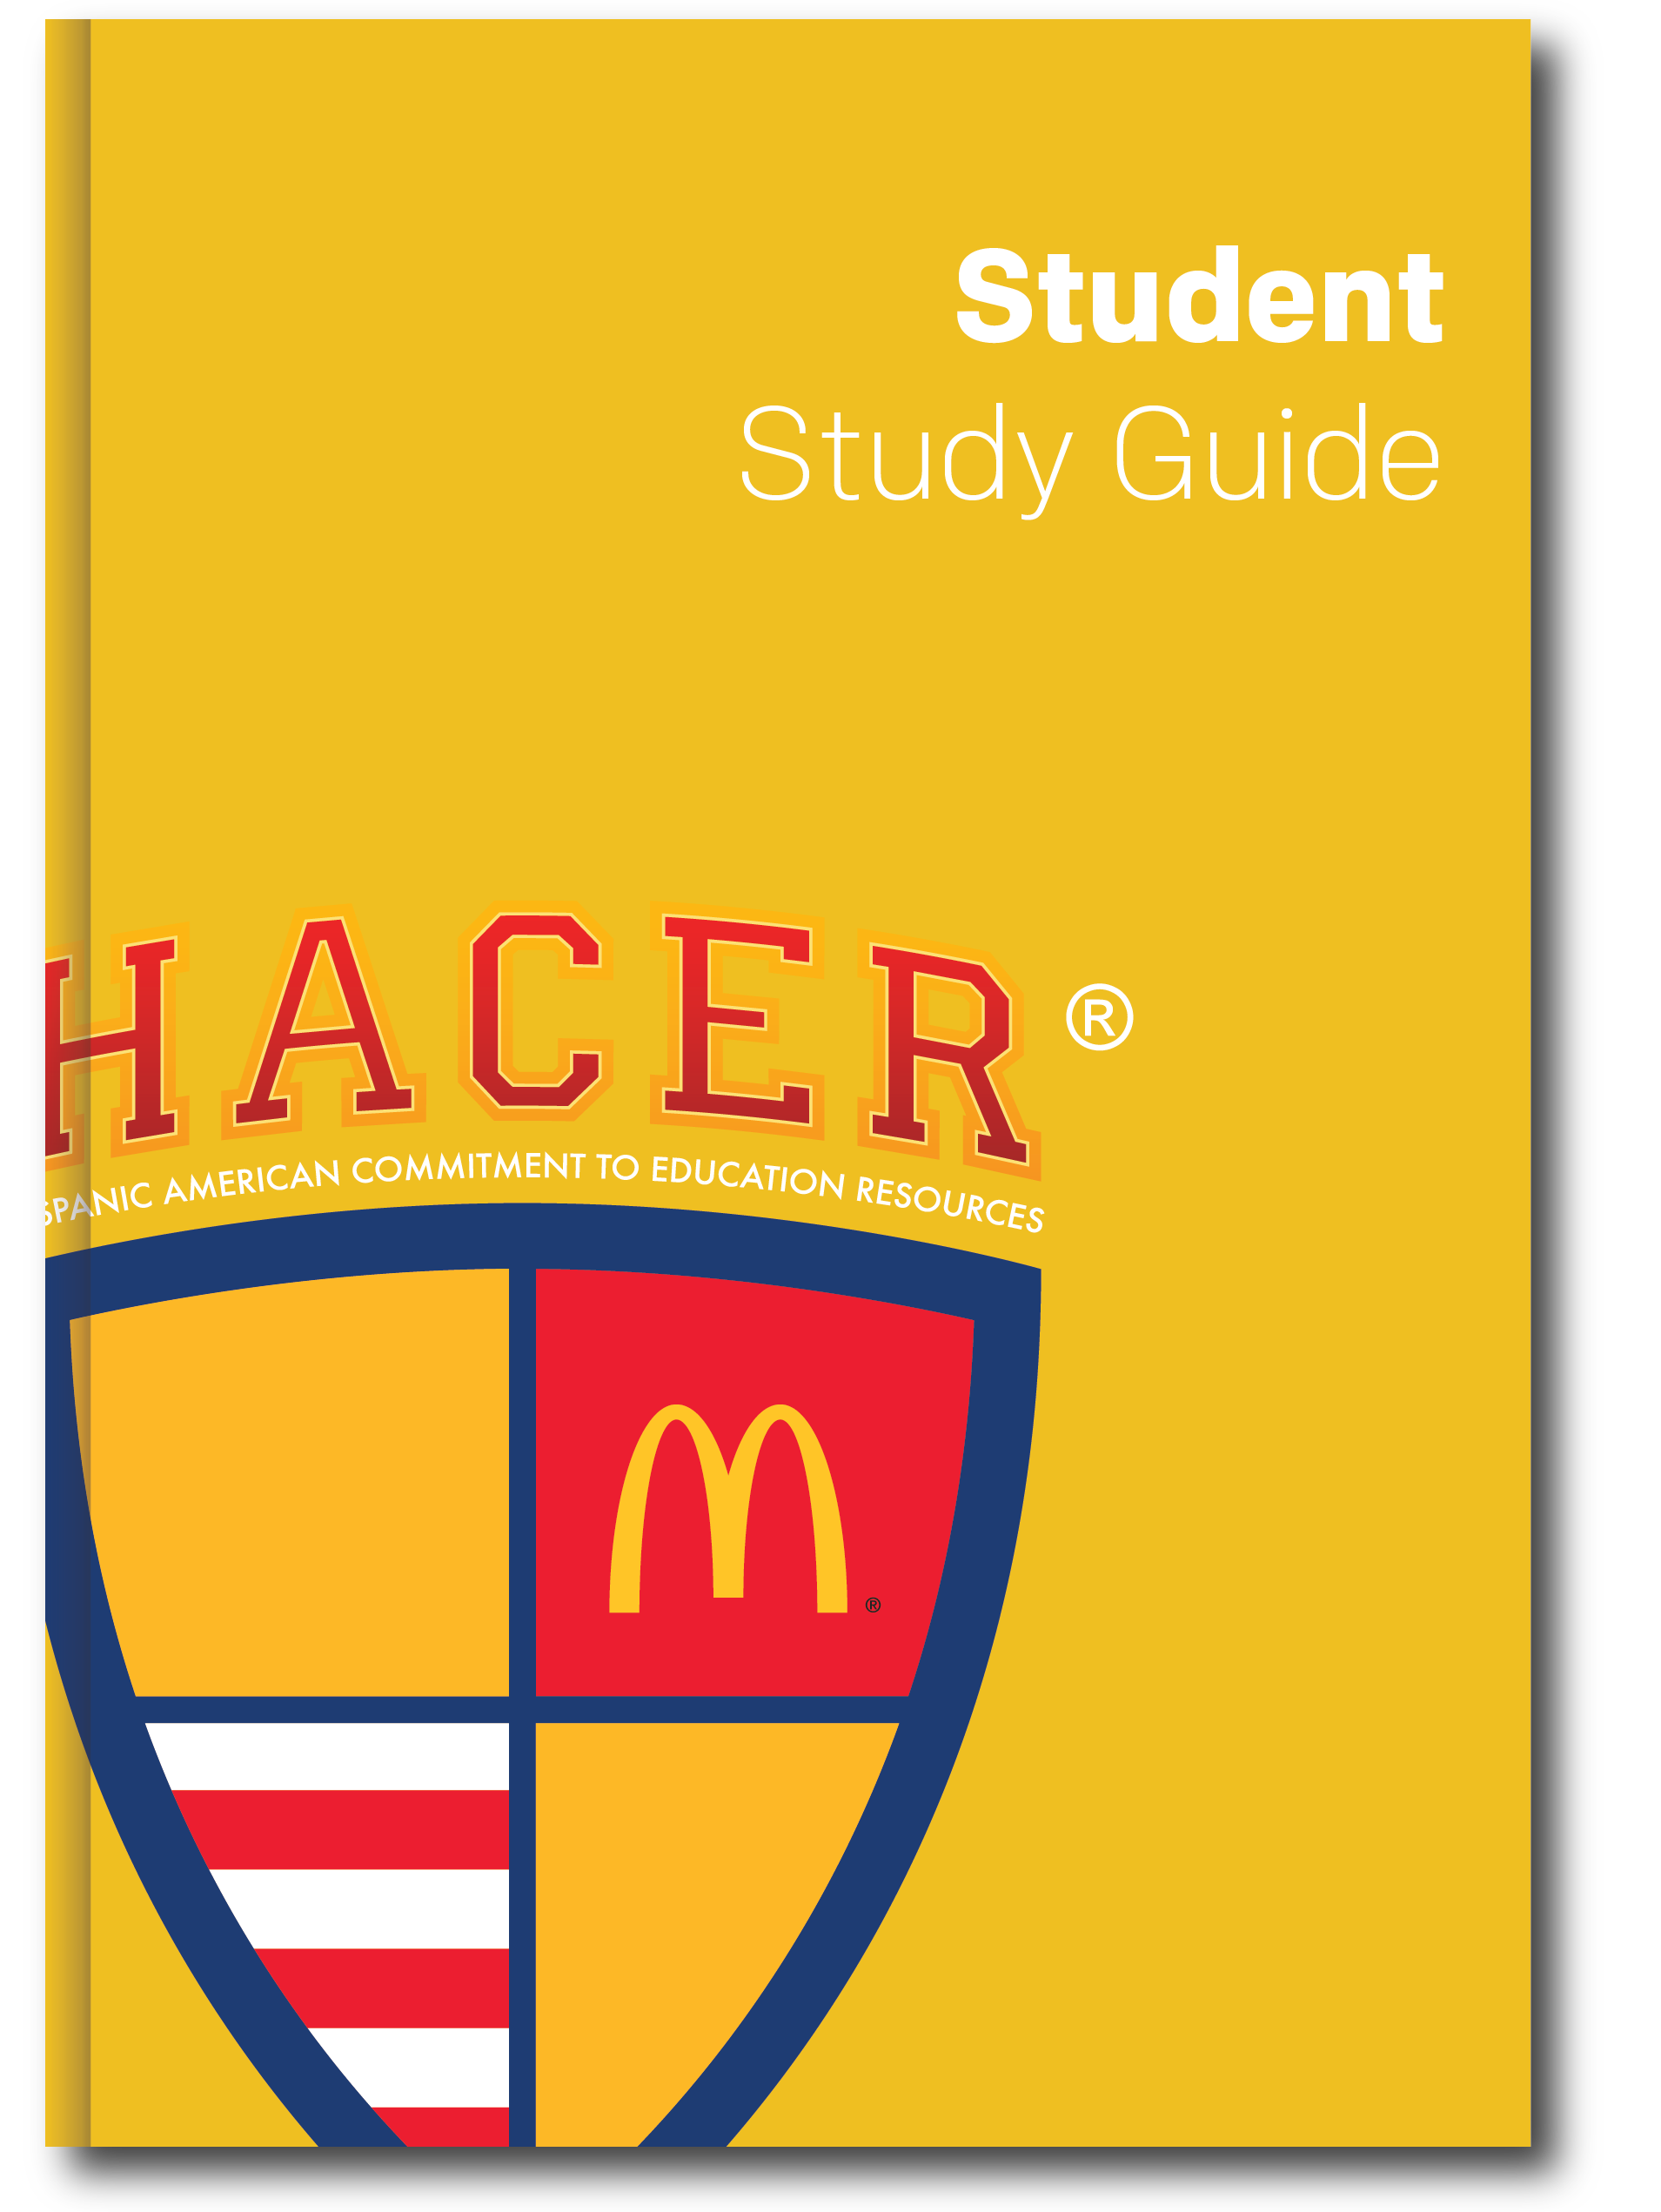 Student Resources - Download the complete HACER® Student Study GuideIndividual resources:How to write a strong essayEssay TipsWhat's the best school for you?Choosing a SchoolWhat questions should you ask your advisor?Advisor QuestionsPlus, get even more tips and resources through our partners at USHLI and CoolSpeak.